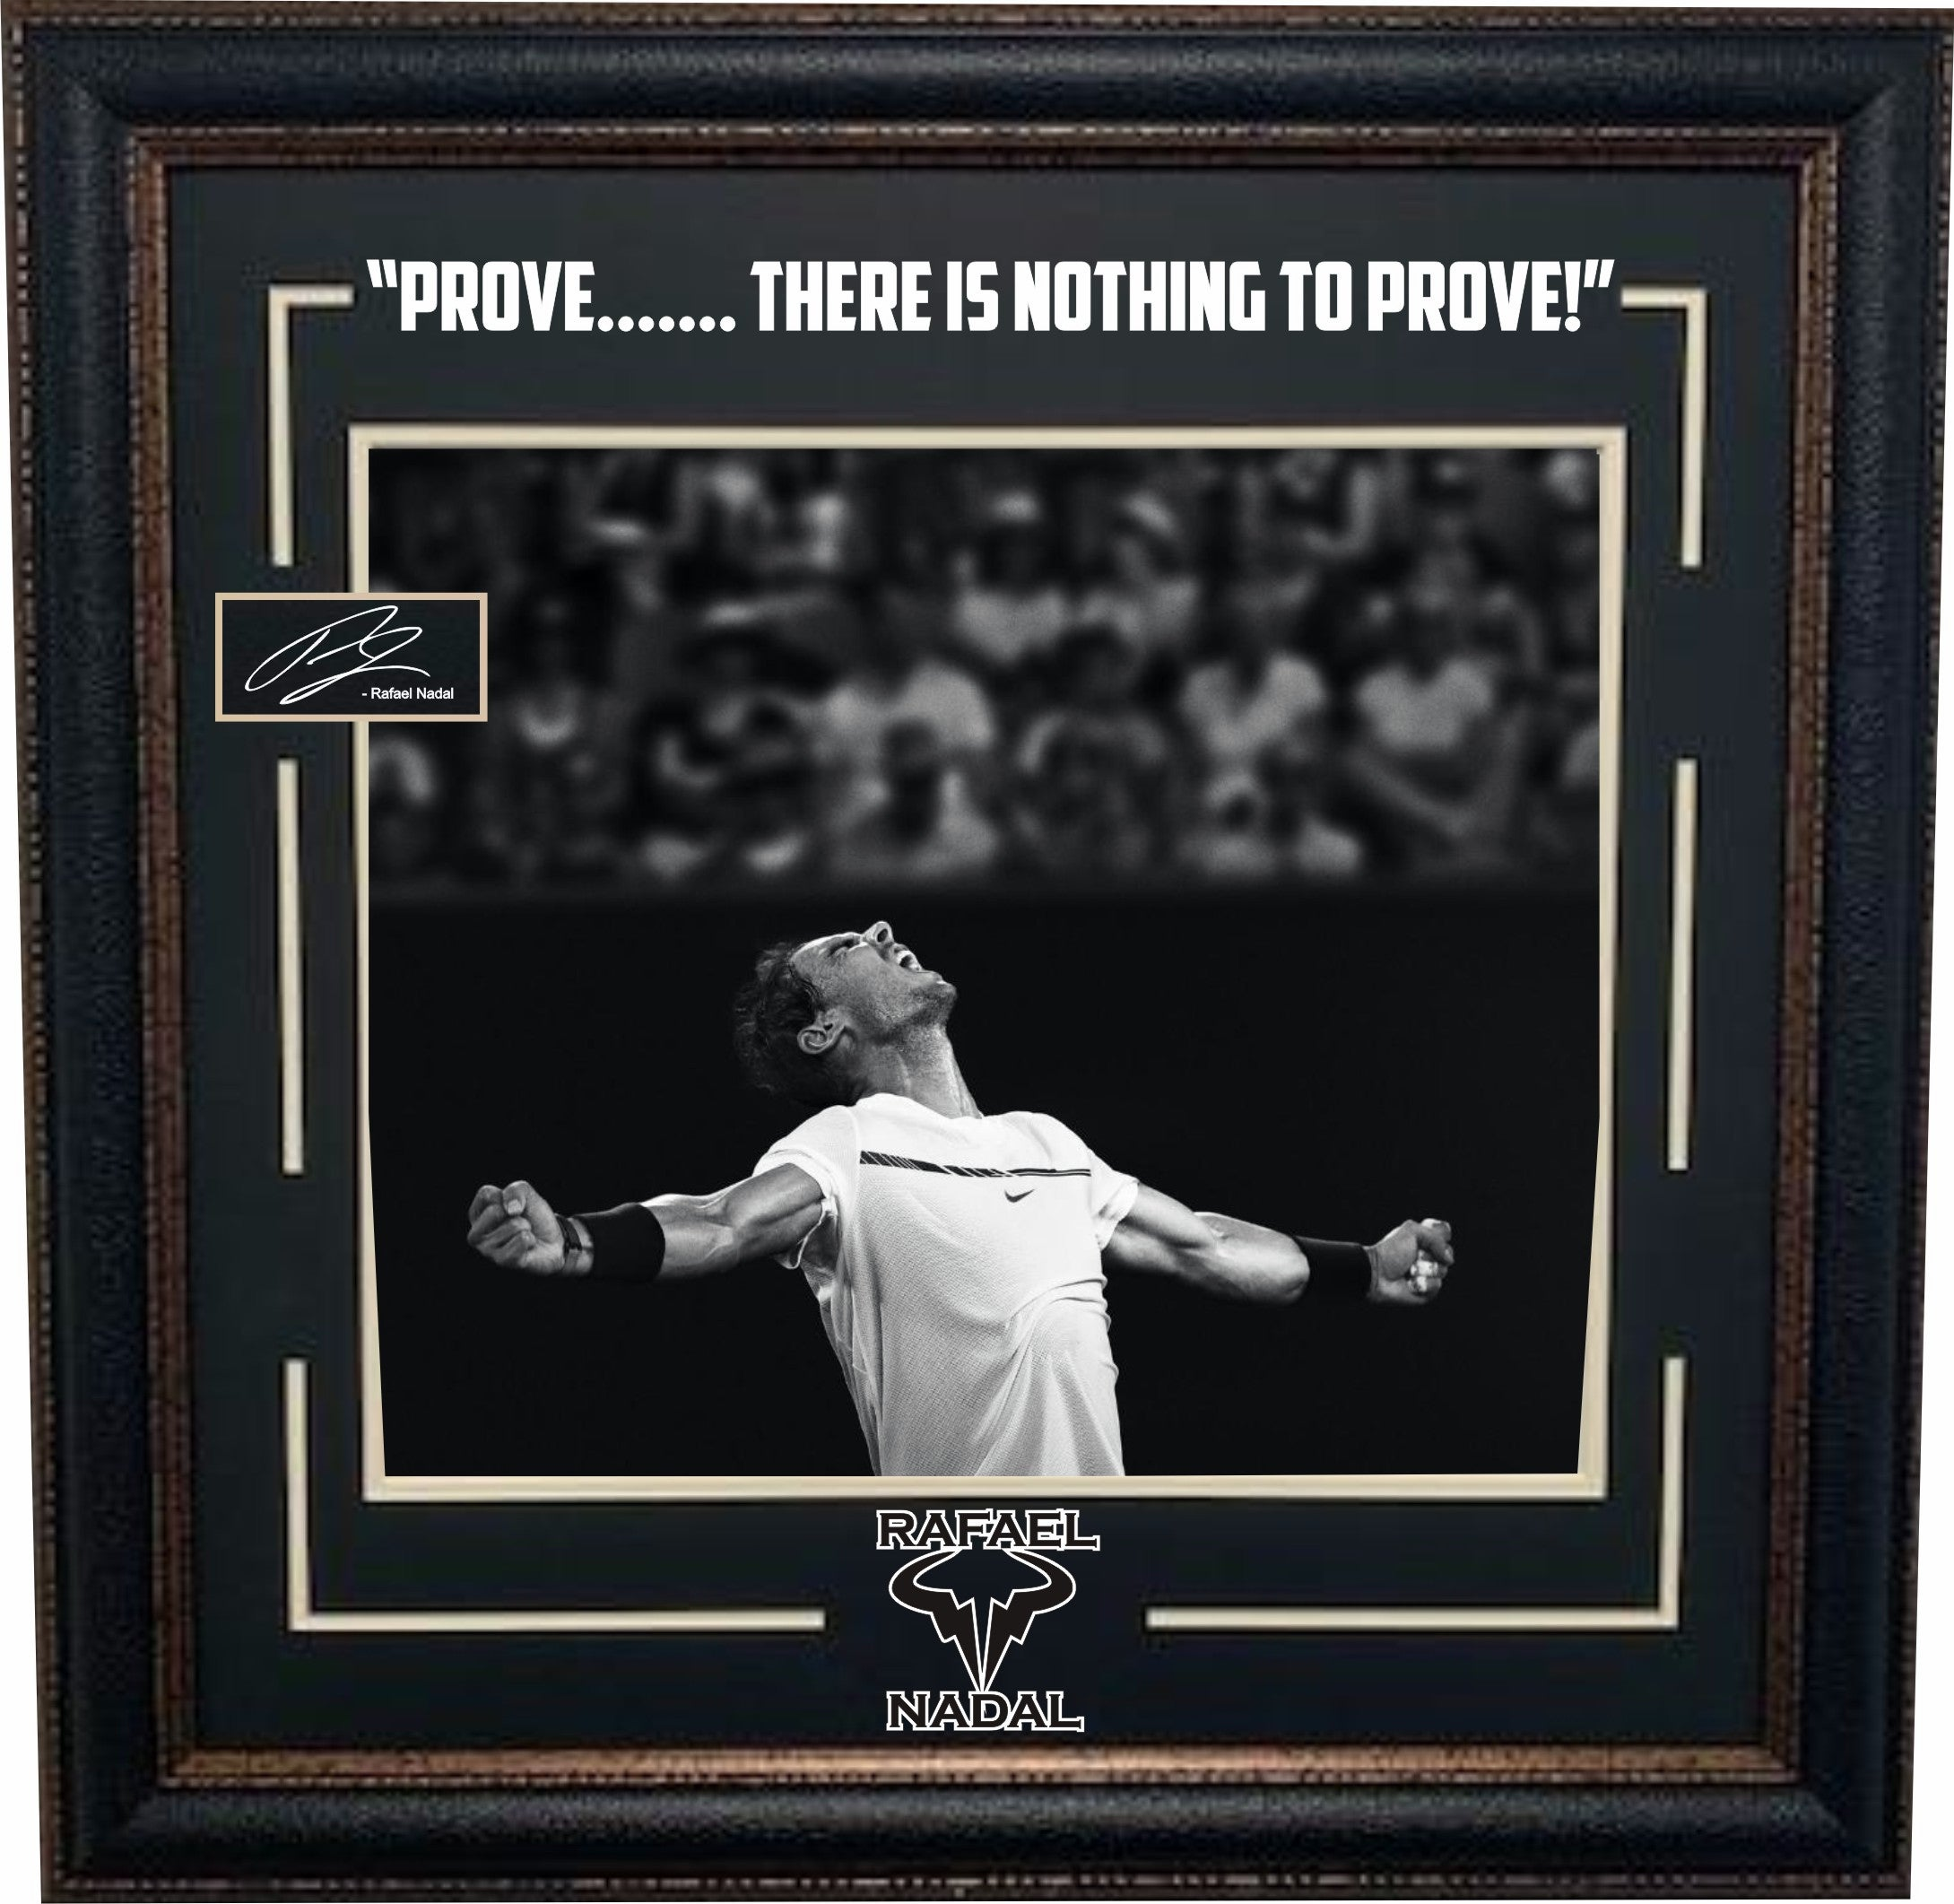 Rafael Nadal Framed Photo With Laser Signature